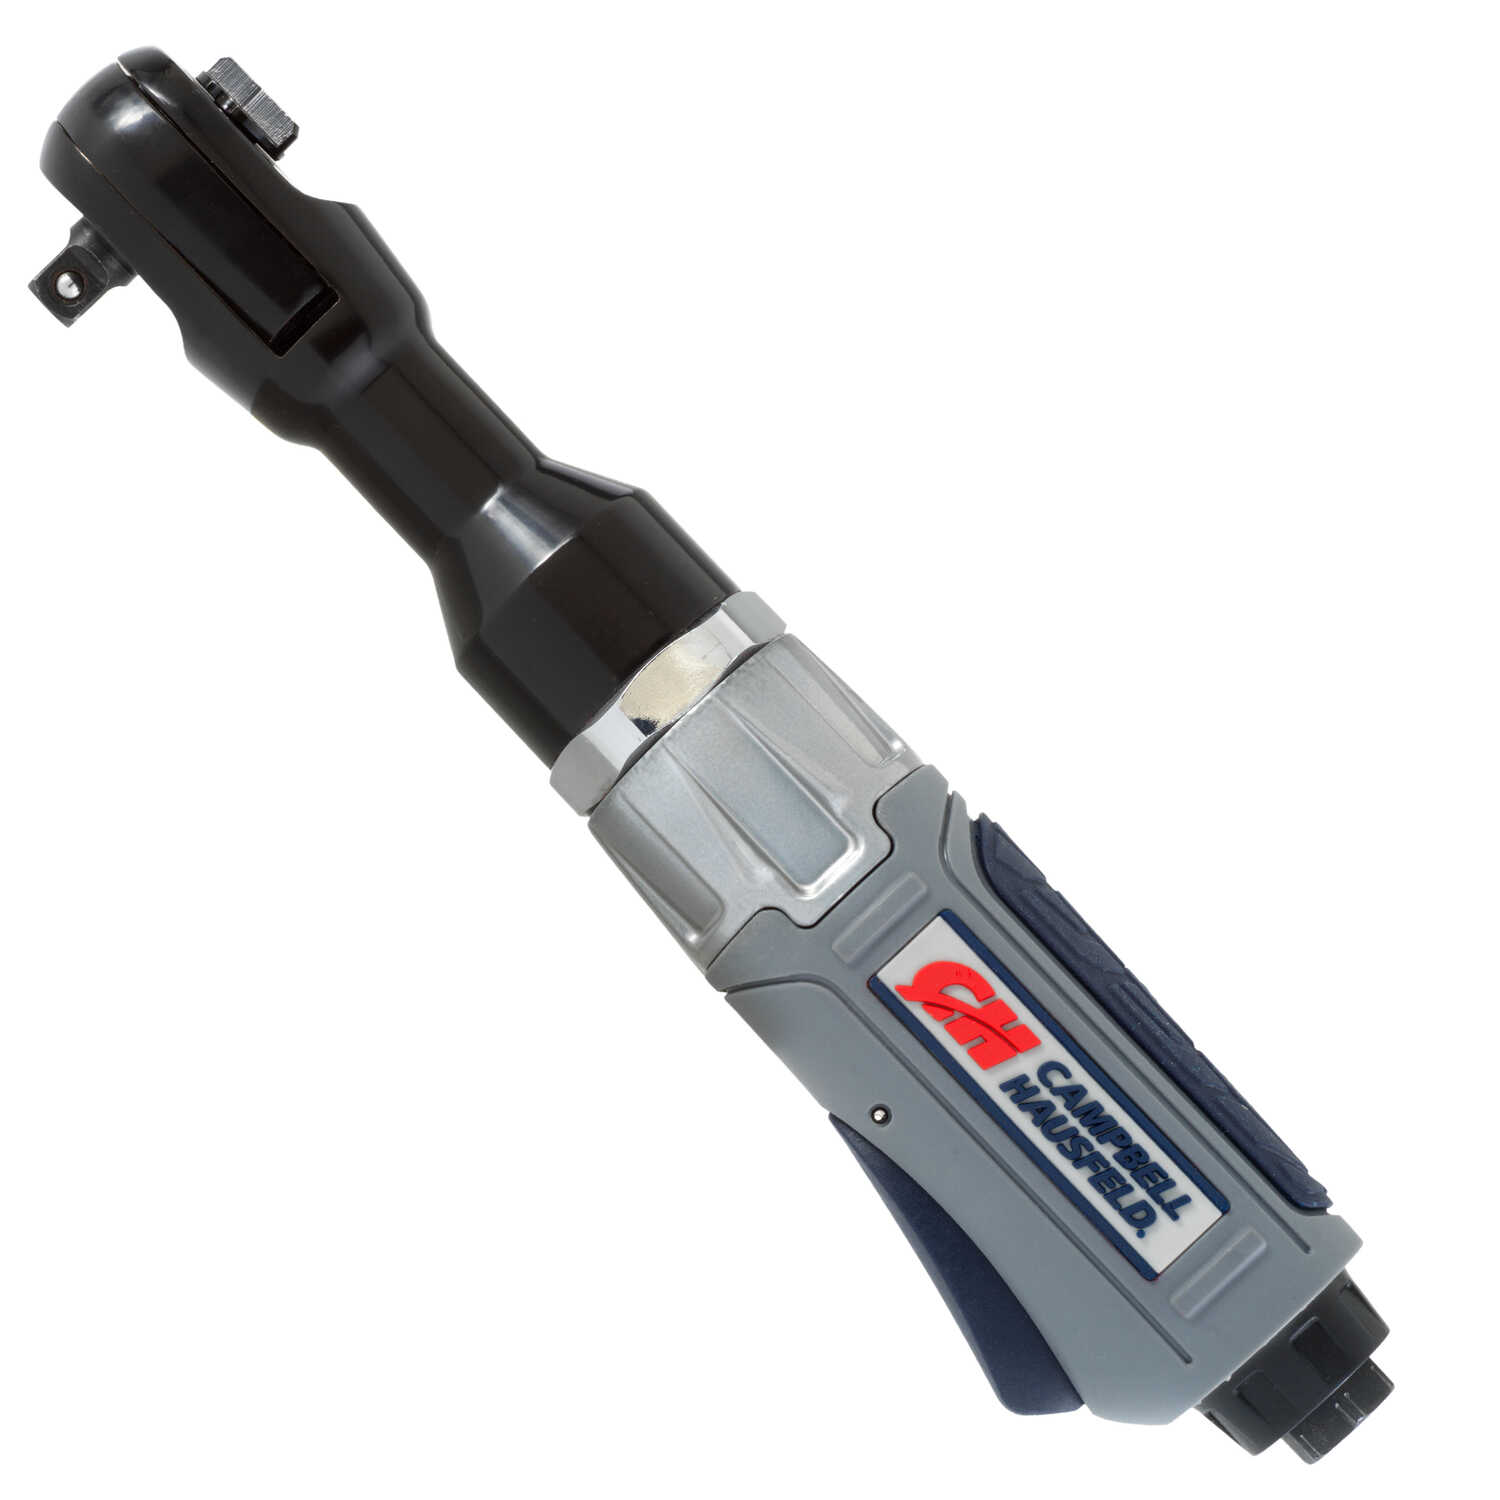 Campbell Hausfeld  .375 in. drive Pneumatic  Air Ratchet  90 psi 75 ft./lbs. 1600 rpm